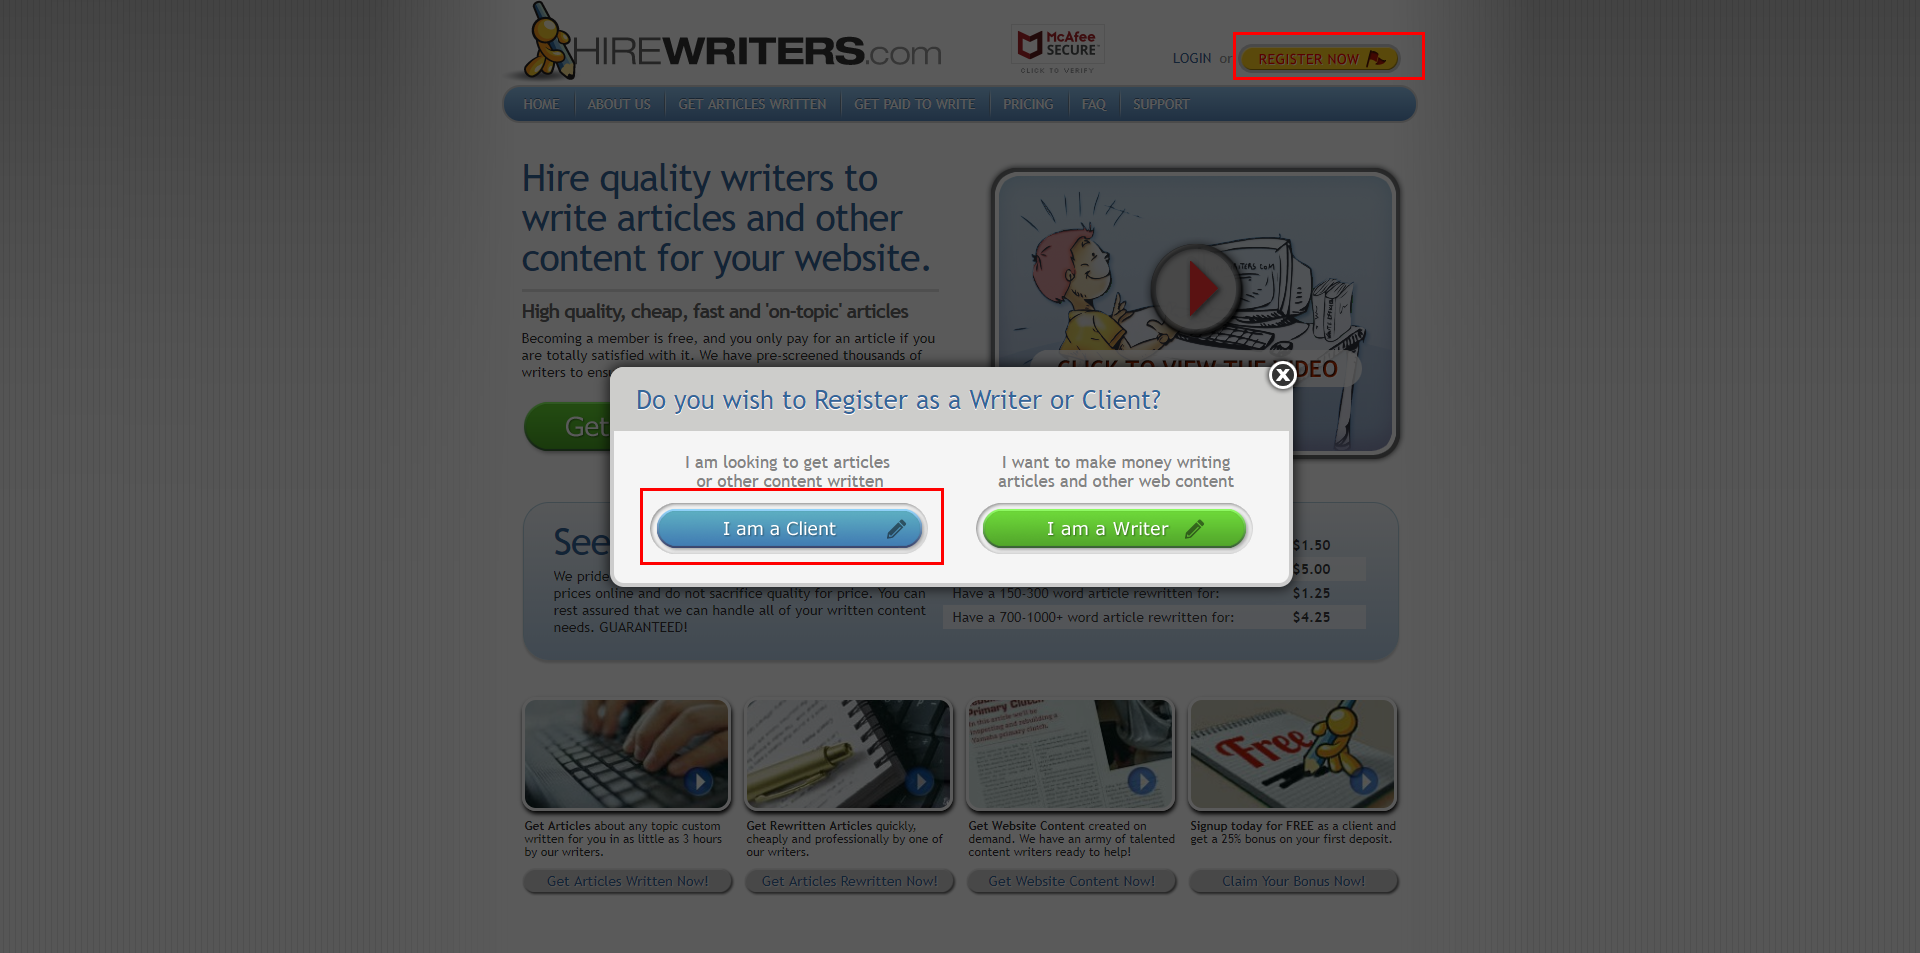 Write or Buy Content - Hire Writers Register